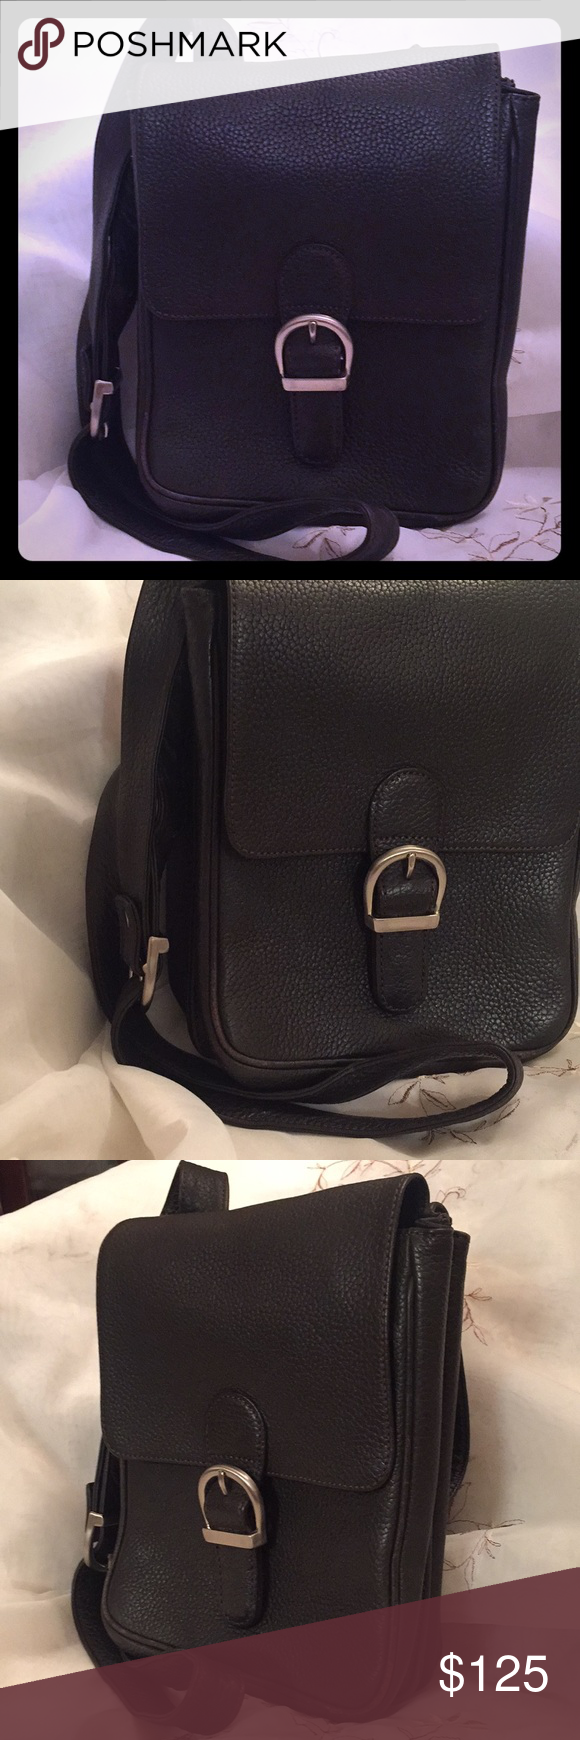 Vintage Ed Bauer Crossbody Bag Double Sided Authentic Leather Nice For